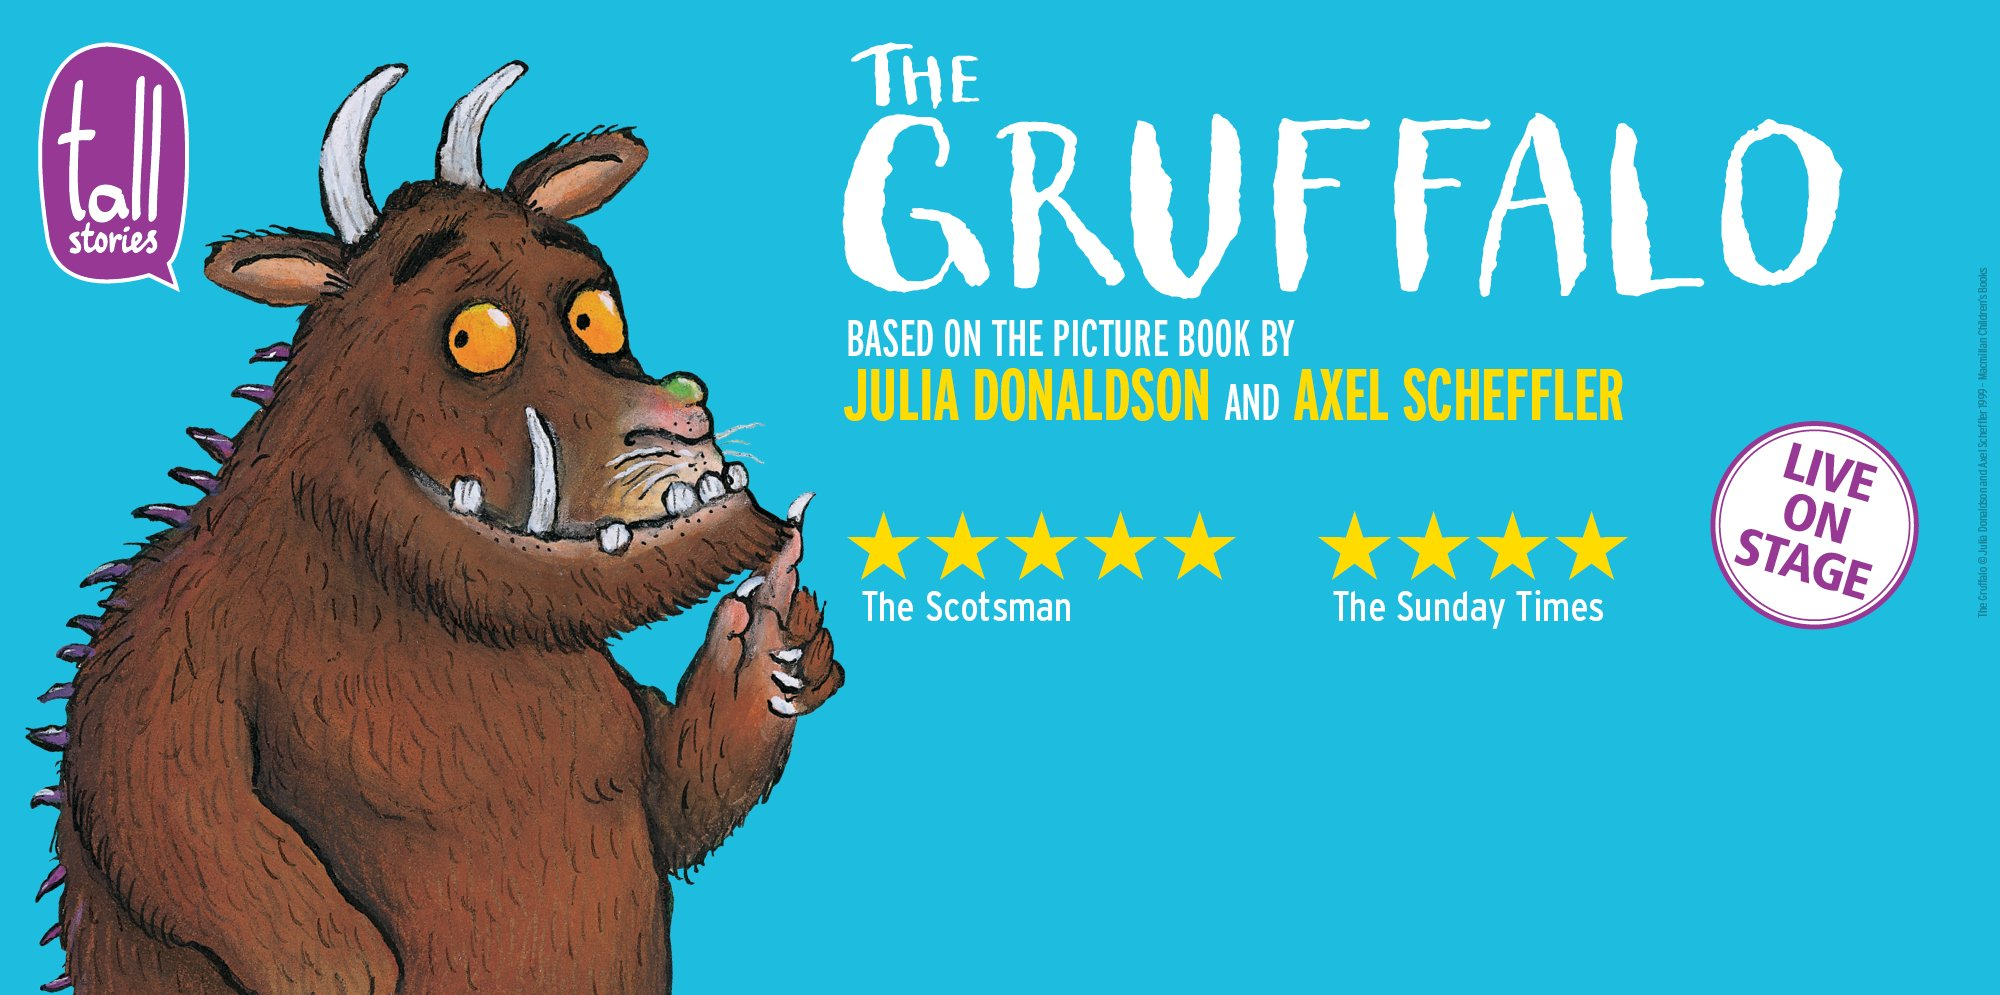 The Gruffalo - an illustration of a smiling monster on a blue background